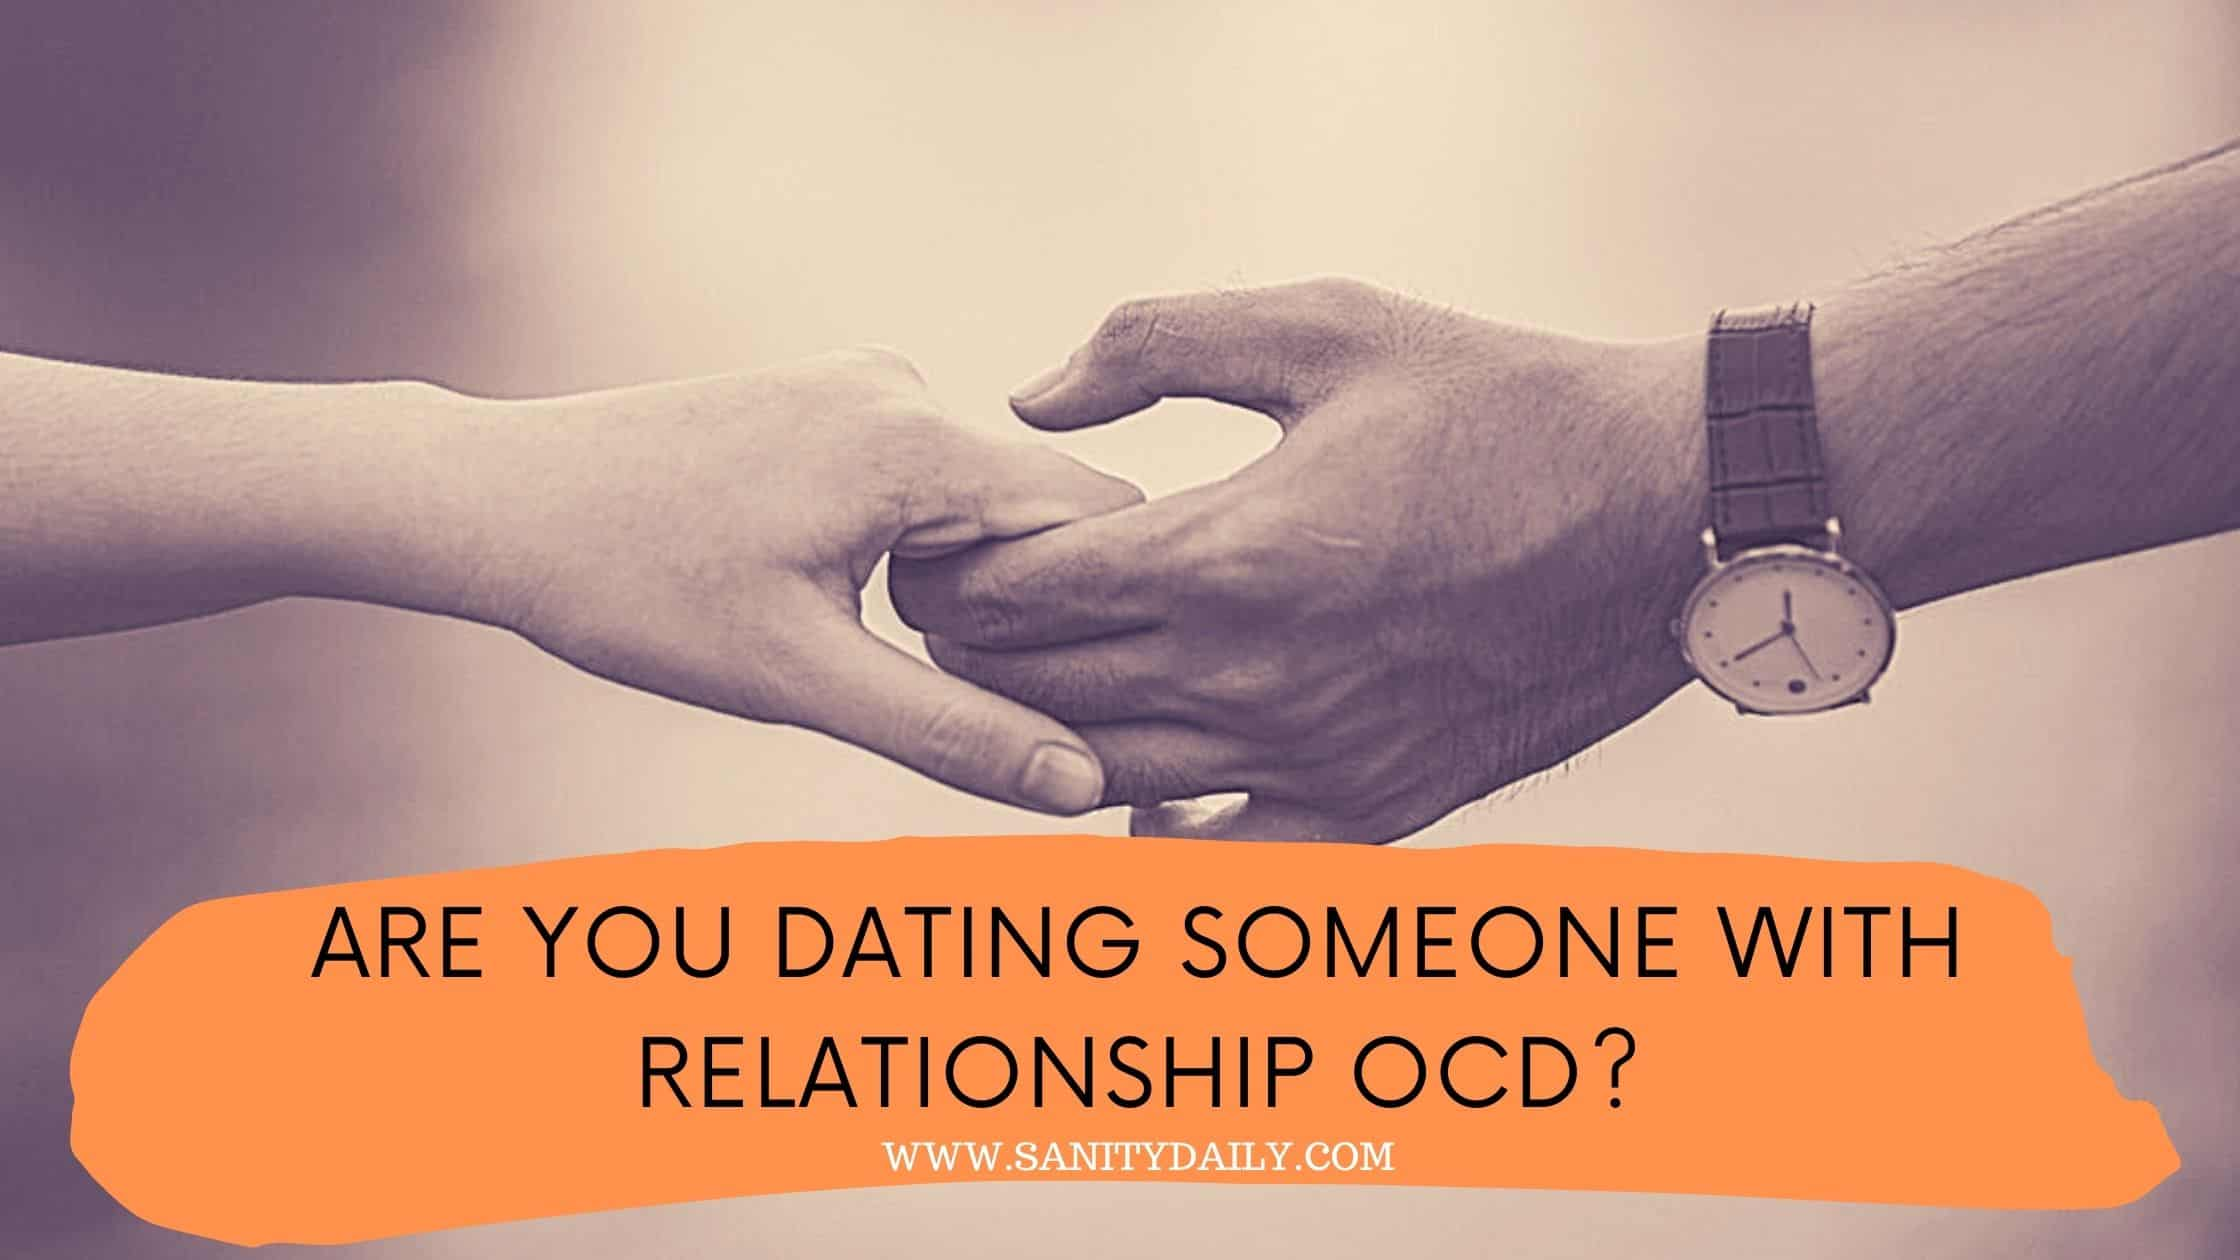 Are You Dating Someone With Relationship OCD?